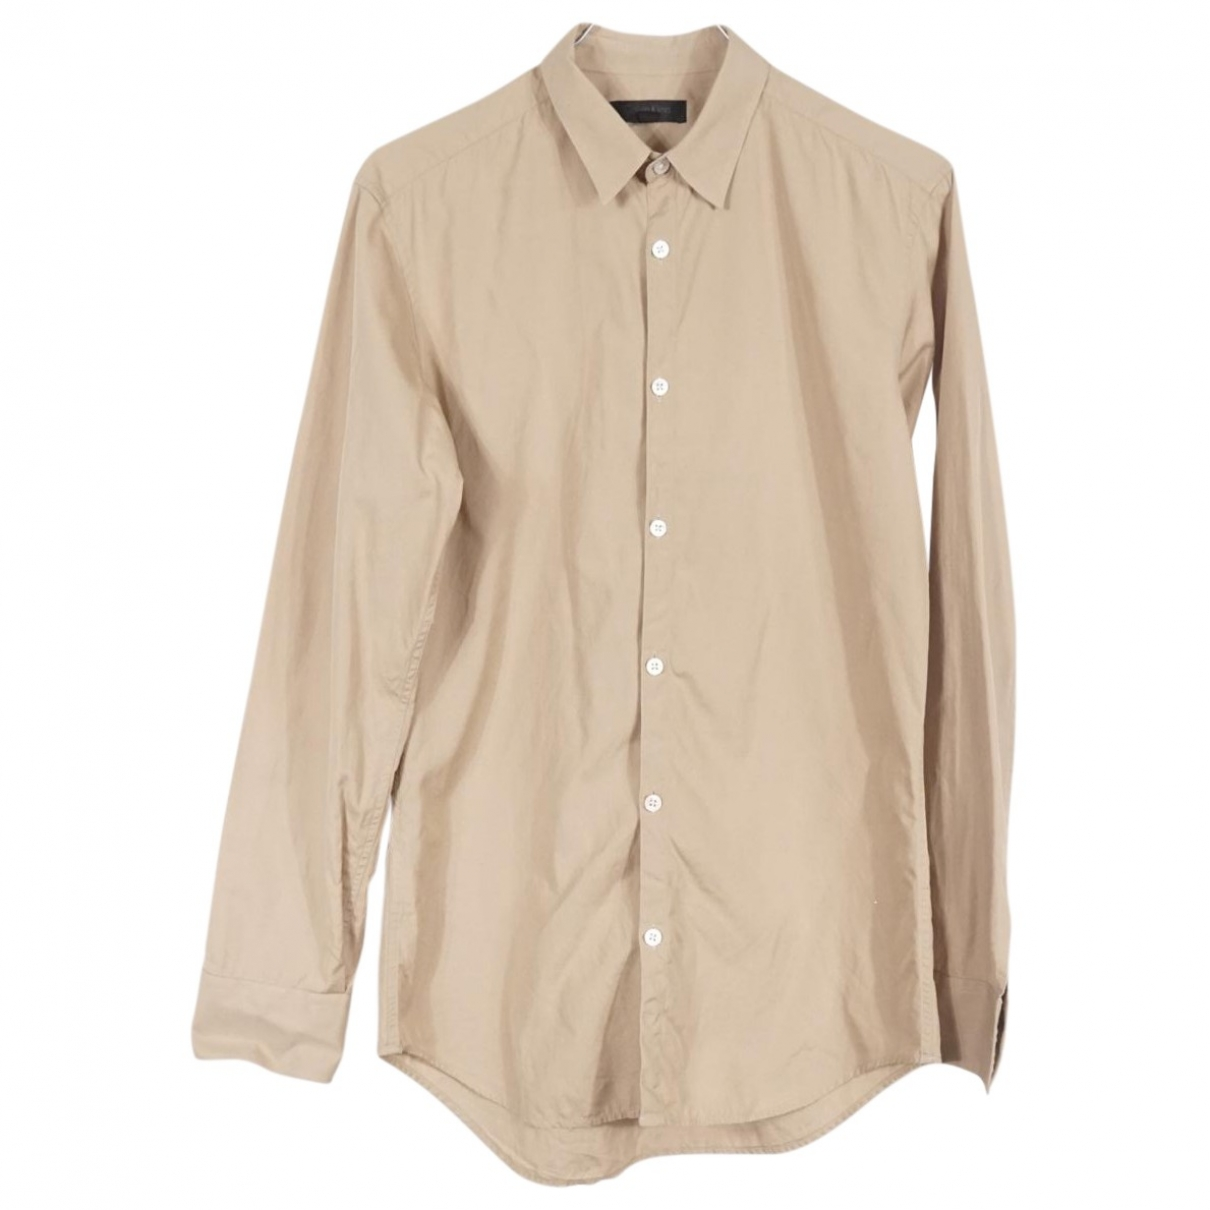 Calvin Klein Collection \N Beige Cotton Shirts for Men 39 EU (tour de cou / collar)